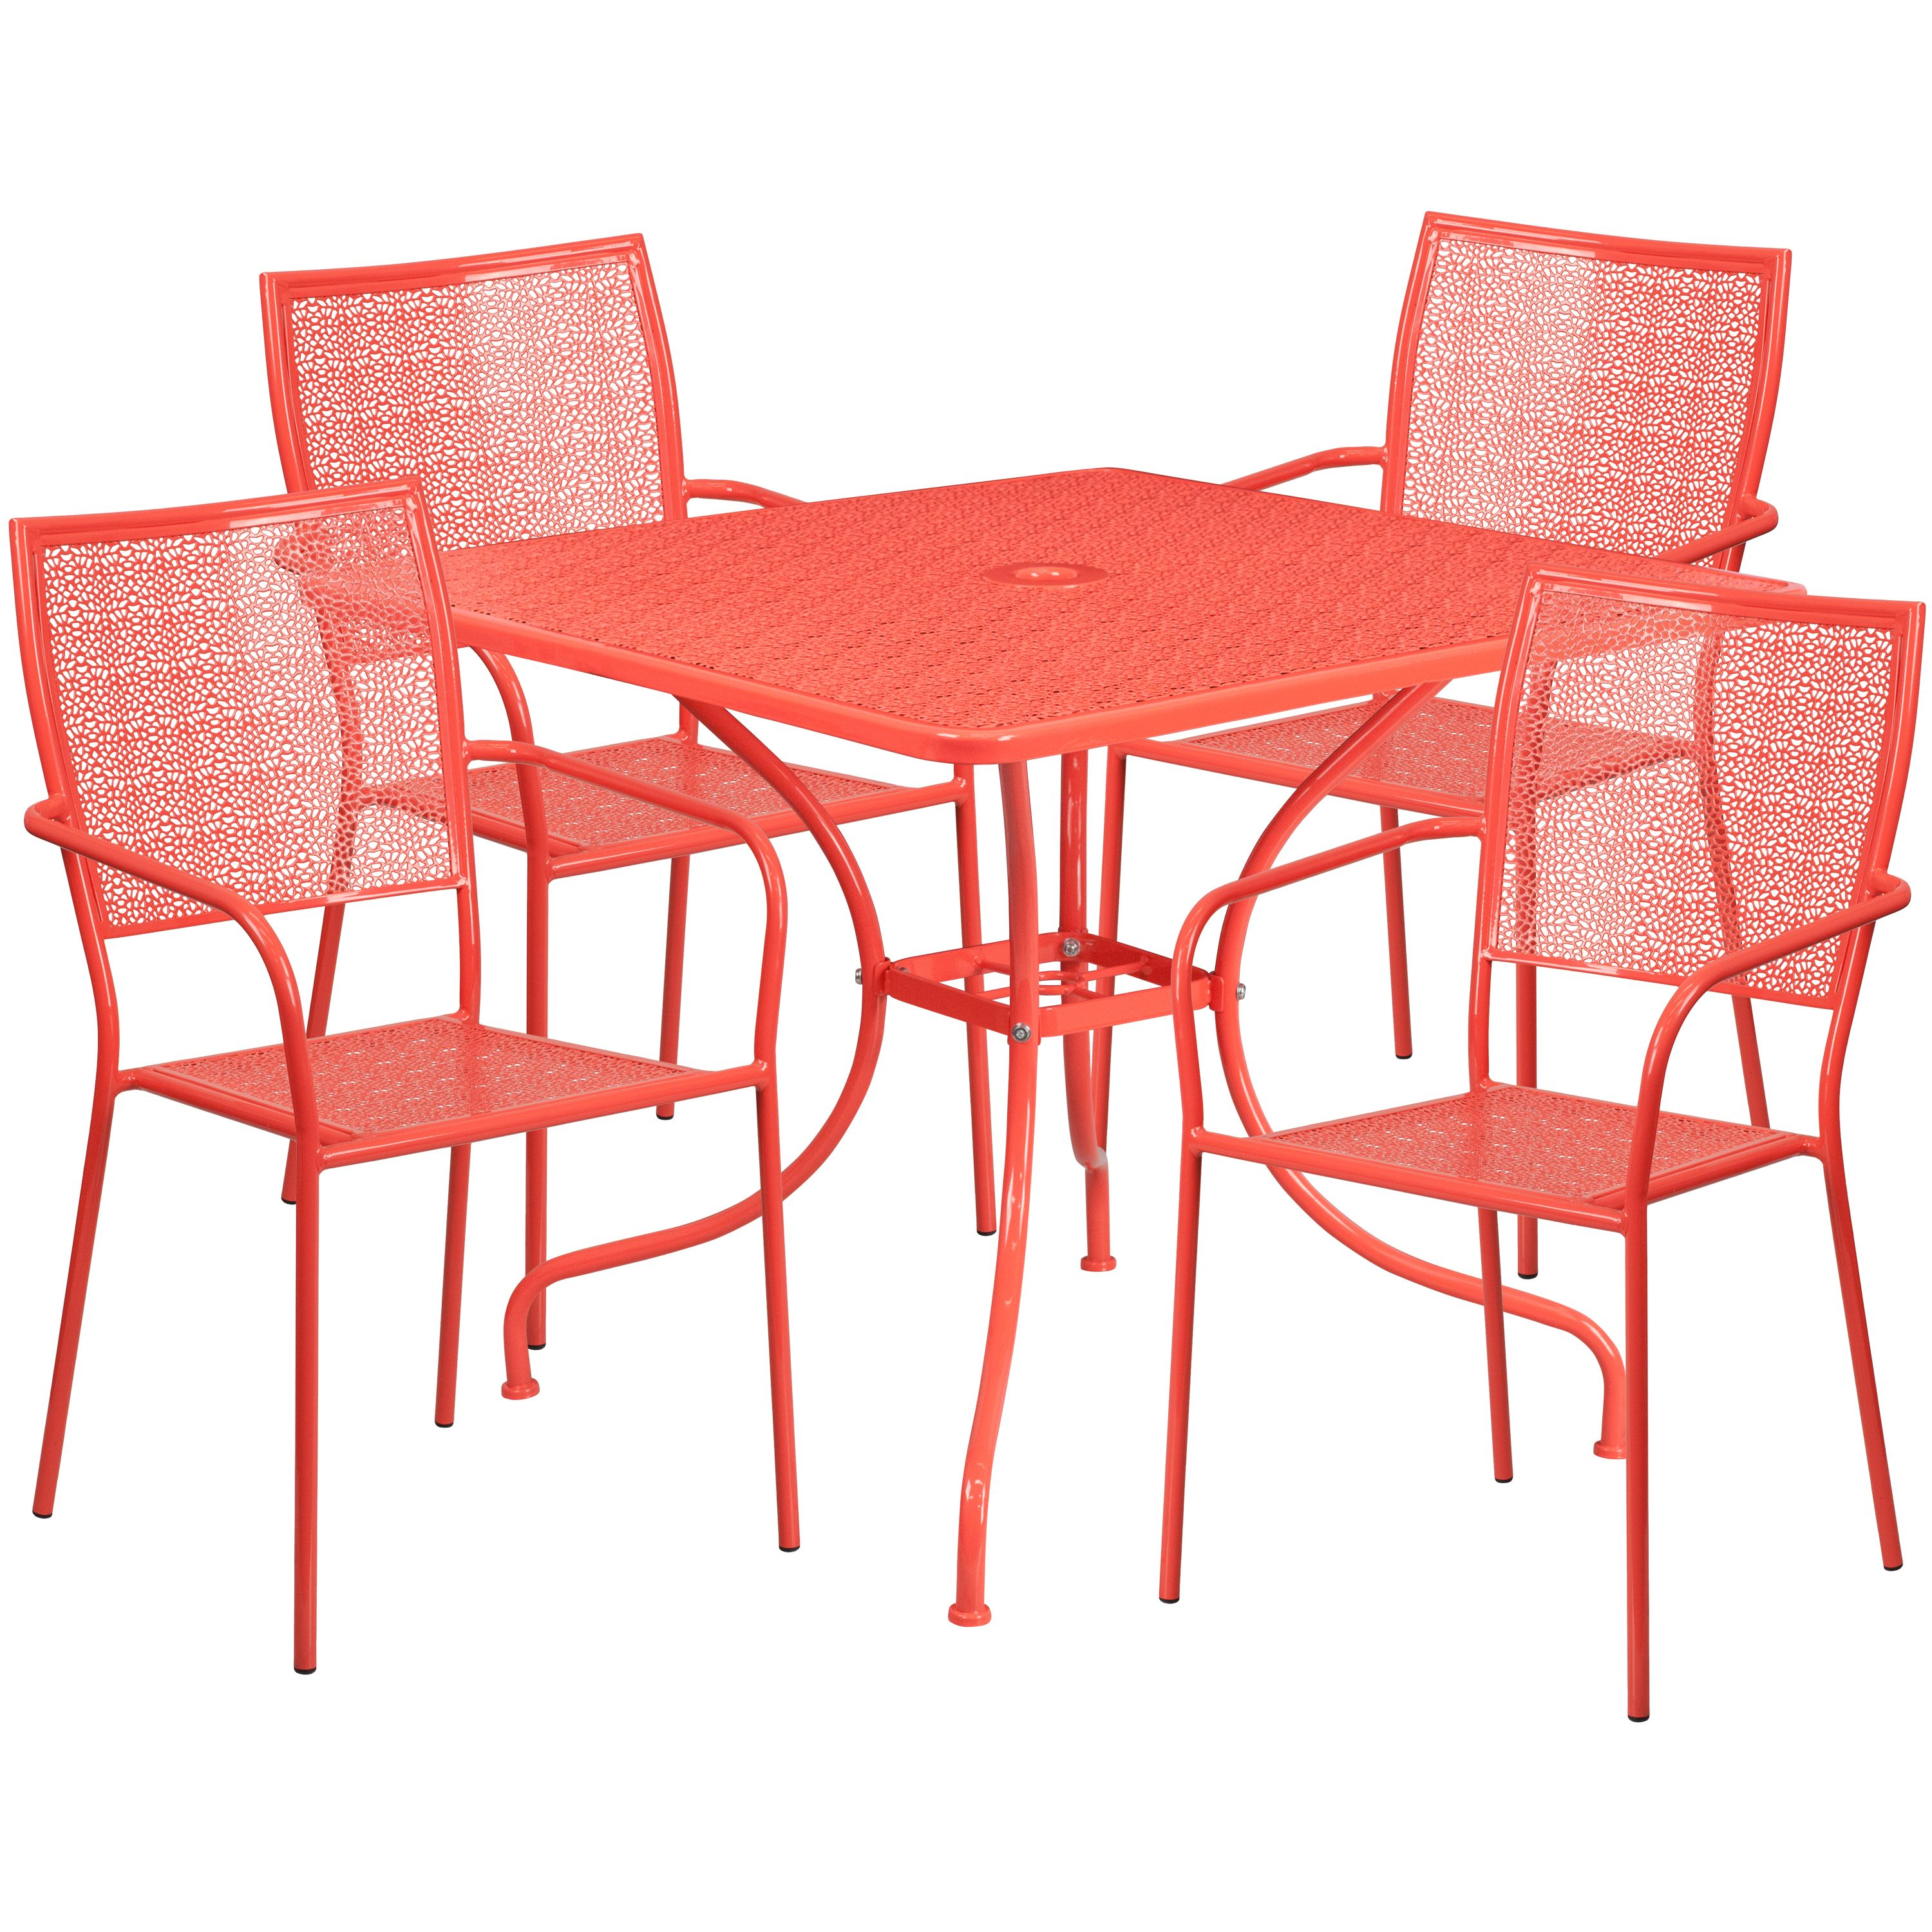 Flash Furniture 35.5'' Square Indoor-Outdoor Steel Patio Table Set with 4 Square Back Chairs Multiple Colors